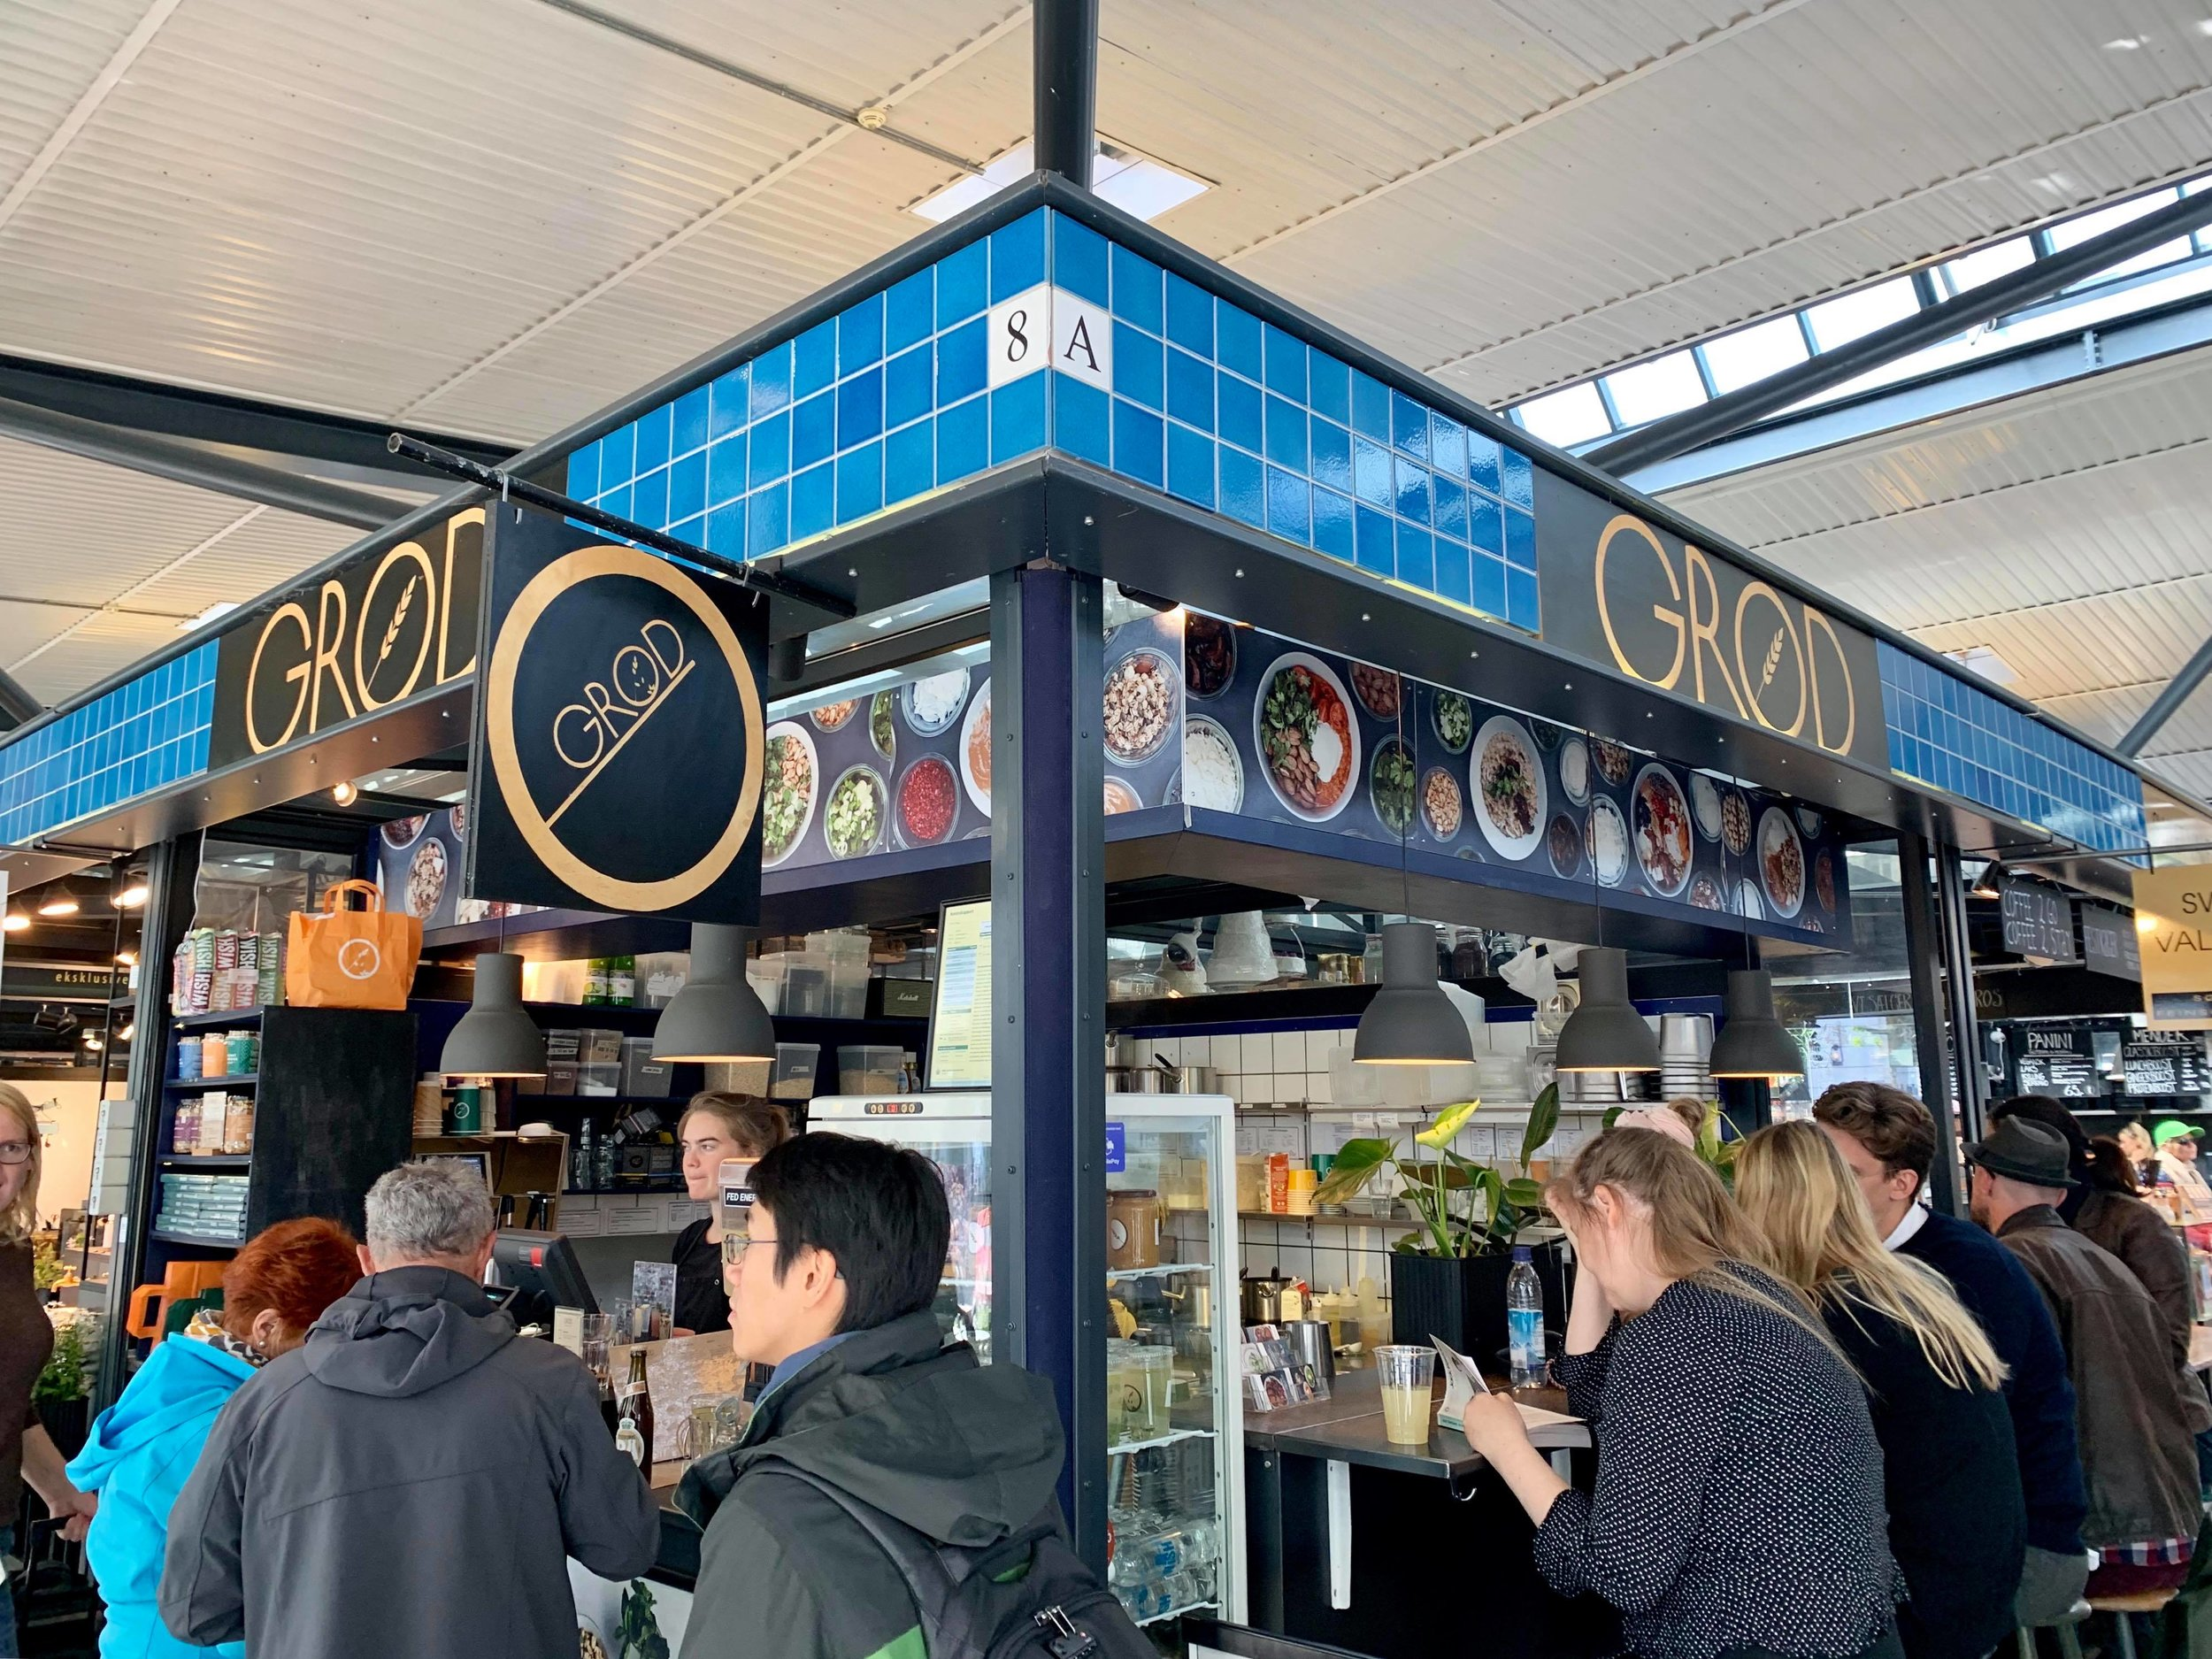 - GRØD opened in Copenhagen back in 2011 dedicated exclusively to a Danish breakfast staple: the porridge. Today the eatery has three locations throughout the city, one of which is here, and offers sweet and savory selections of the Danish porridge.